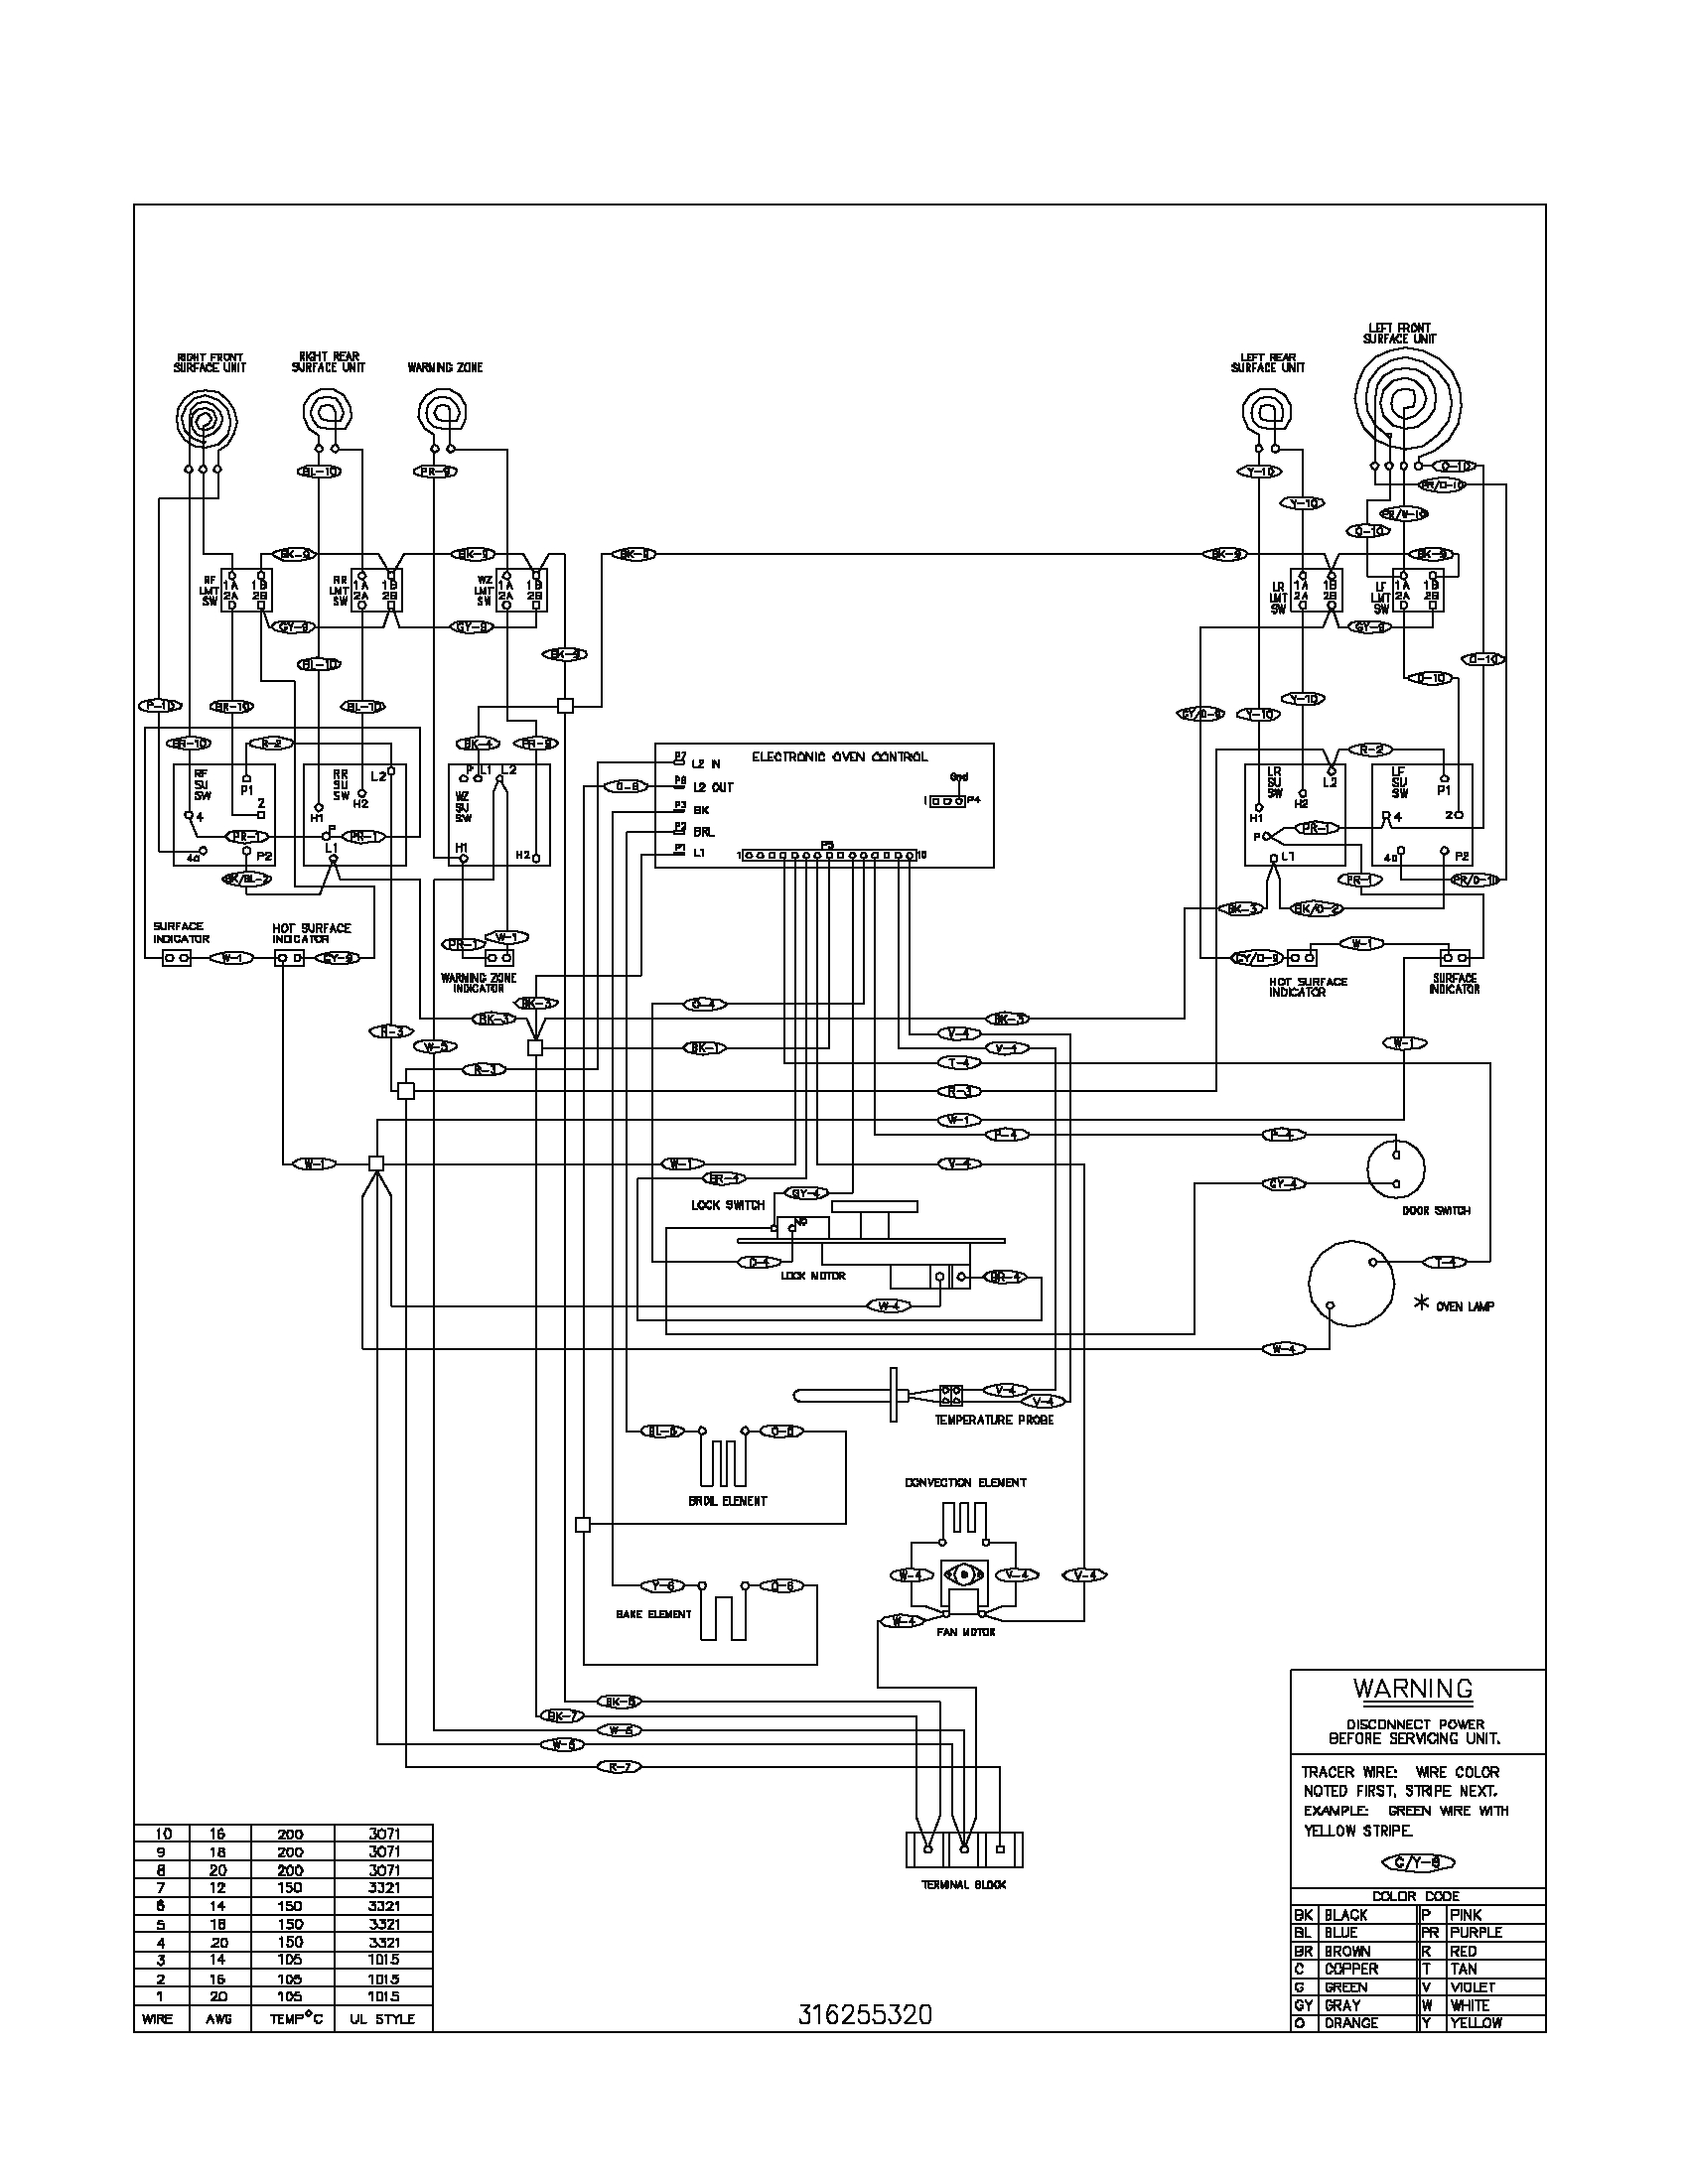 Square D Buck Boost Transformer    Wiring       Diagram    Collection      Wiring       Diagram    Sample